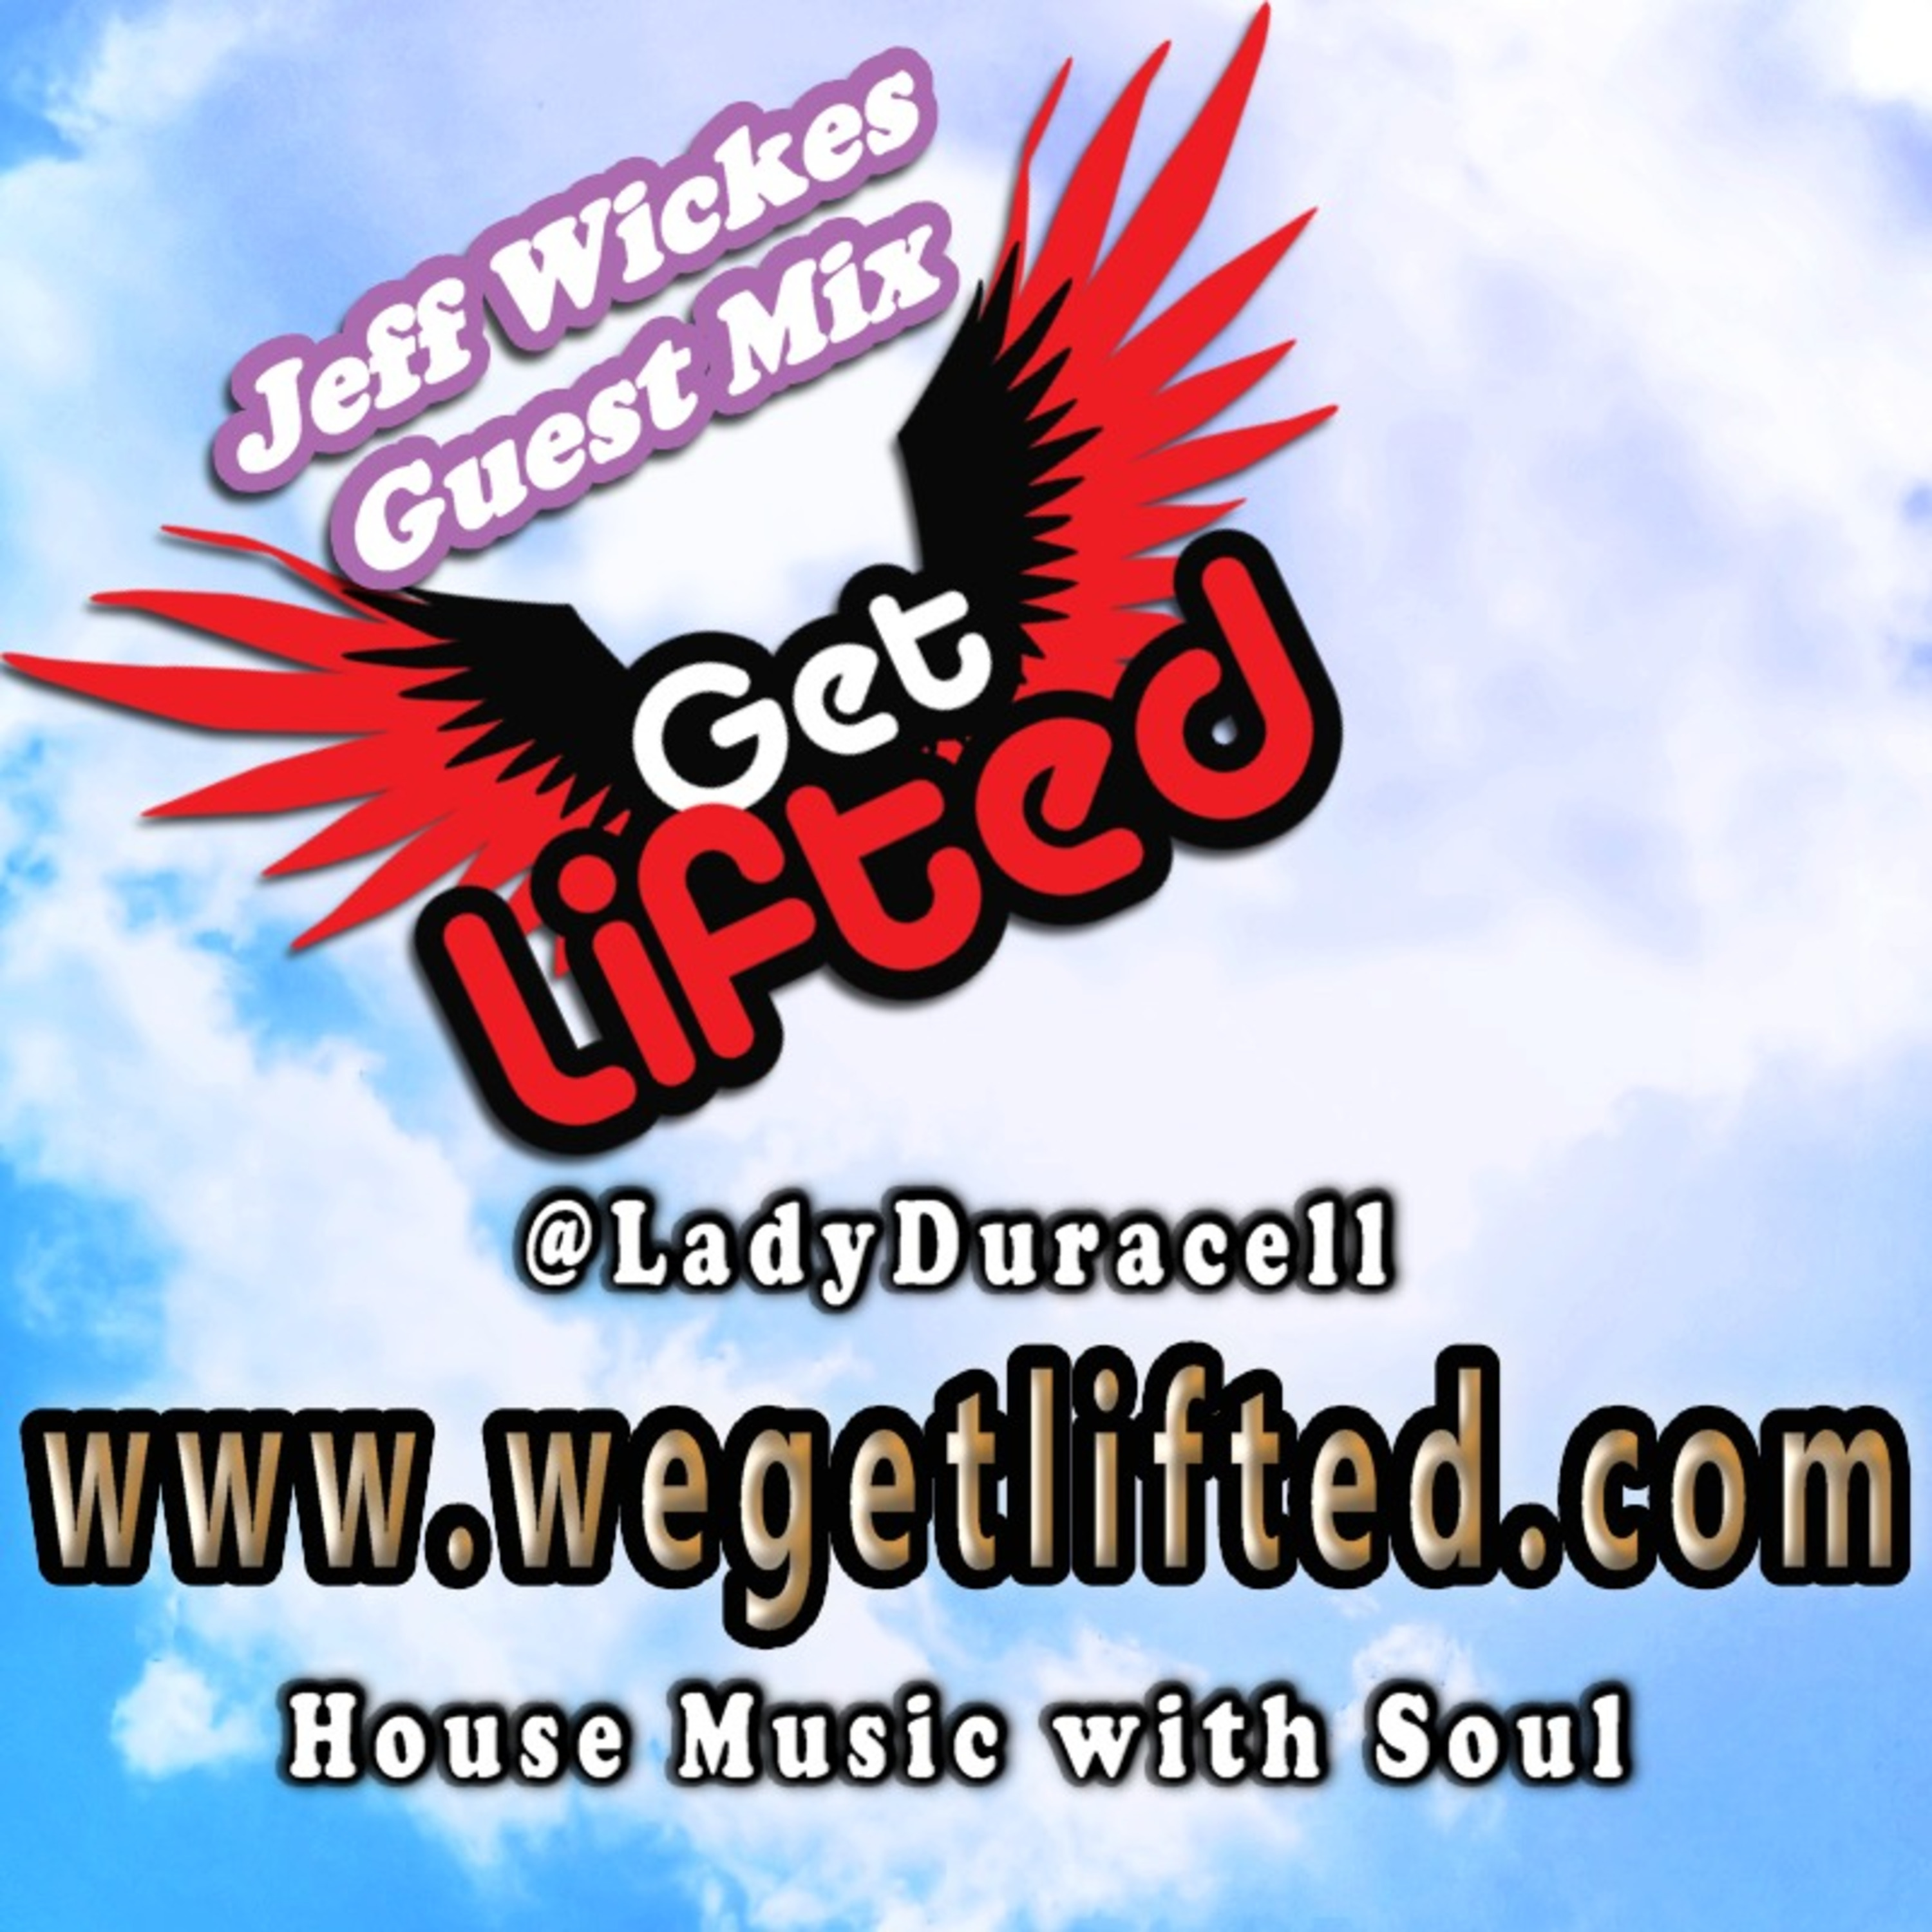 Get Lifted Guest Mix From Jeff Wickes Get Lifted With DJ